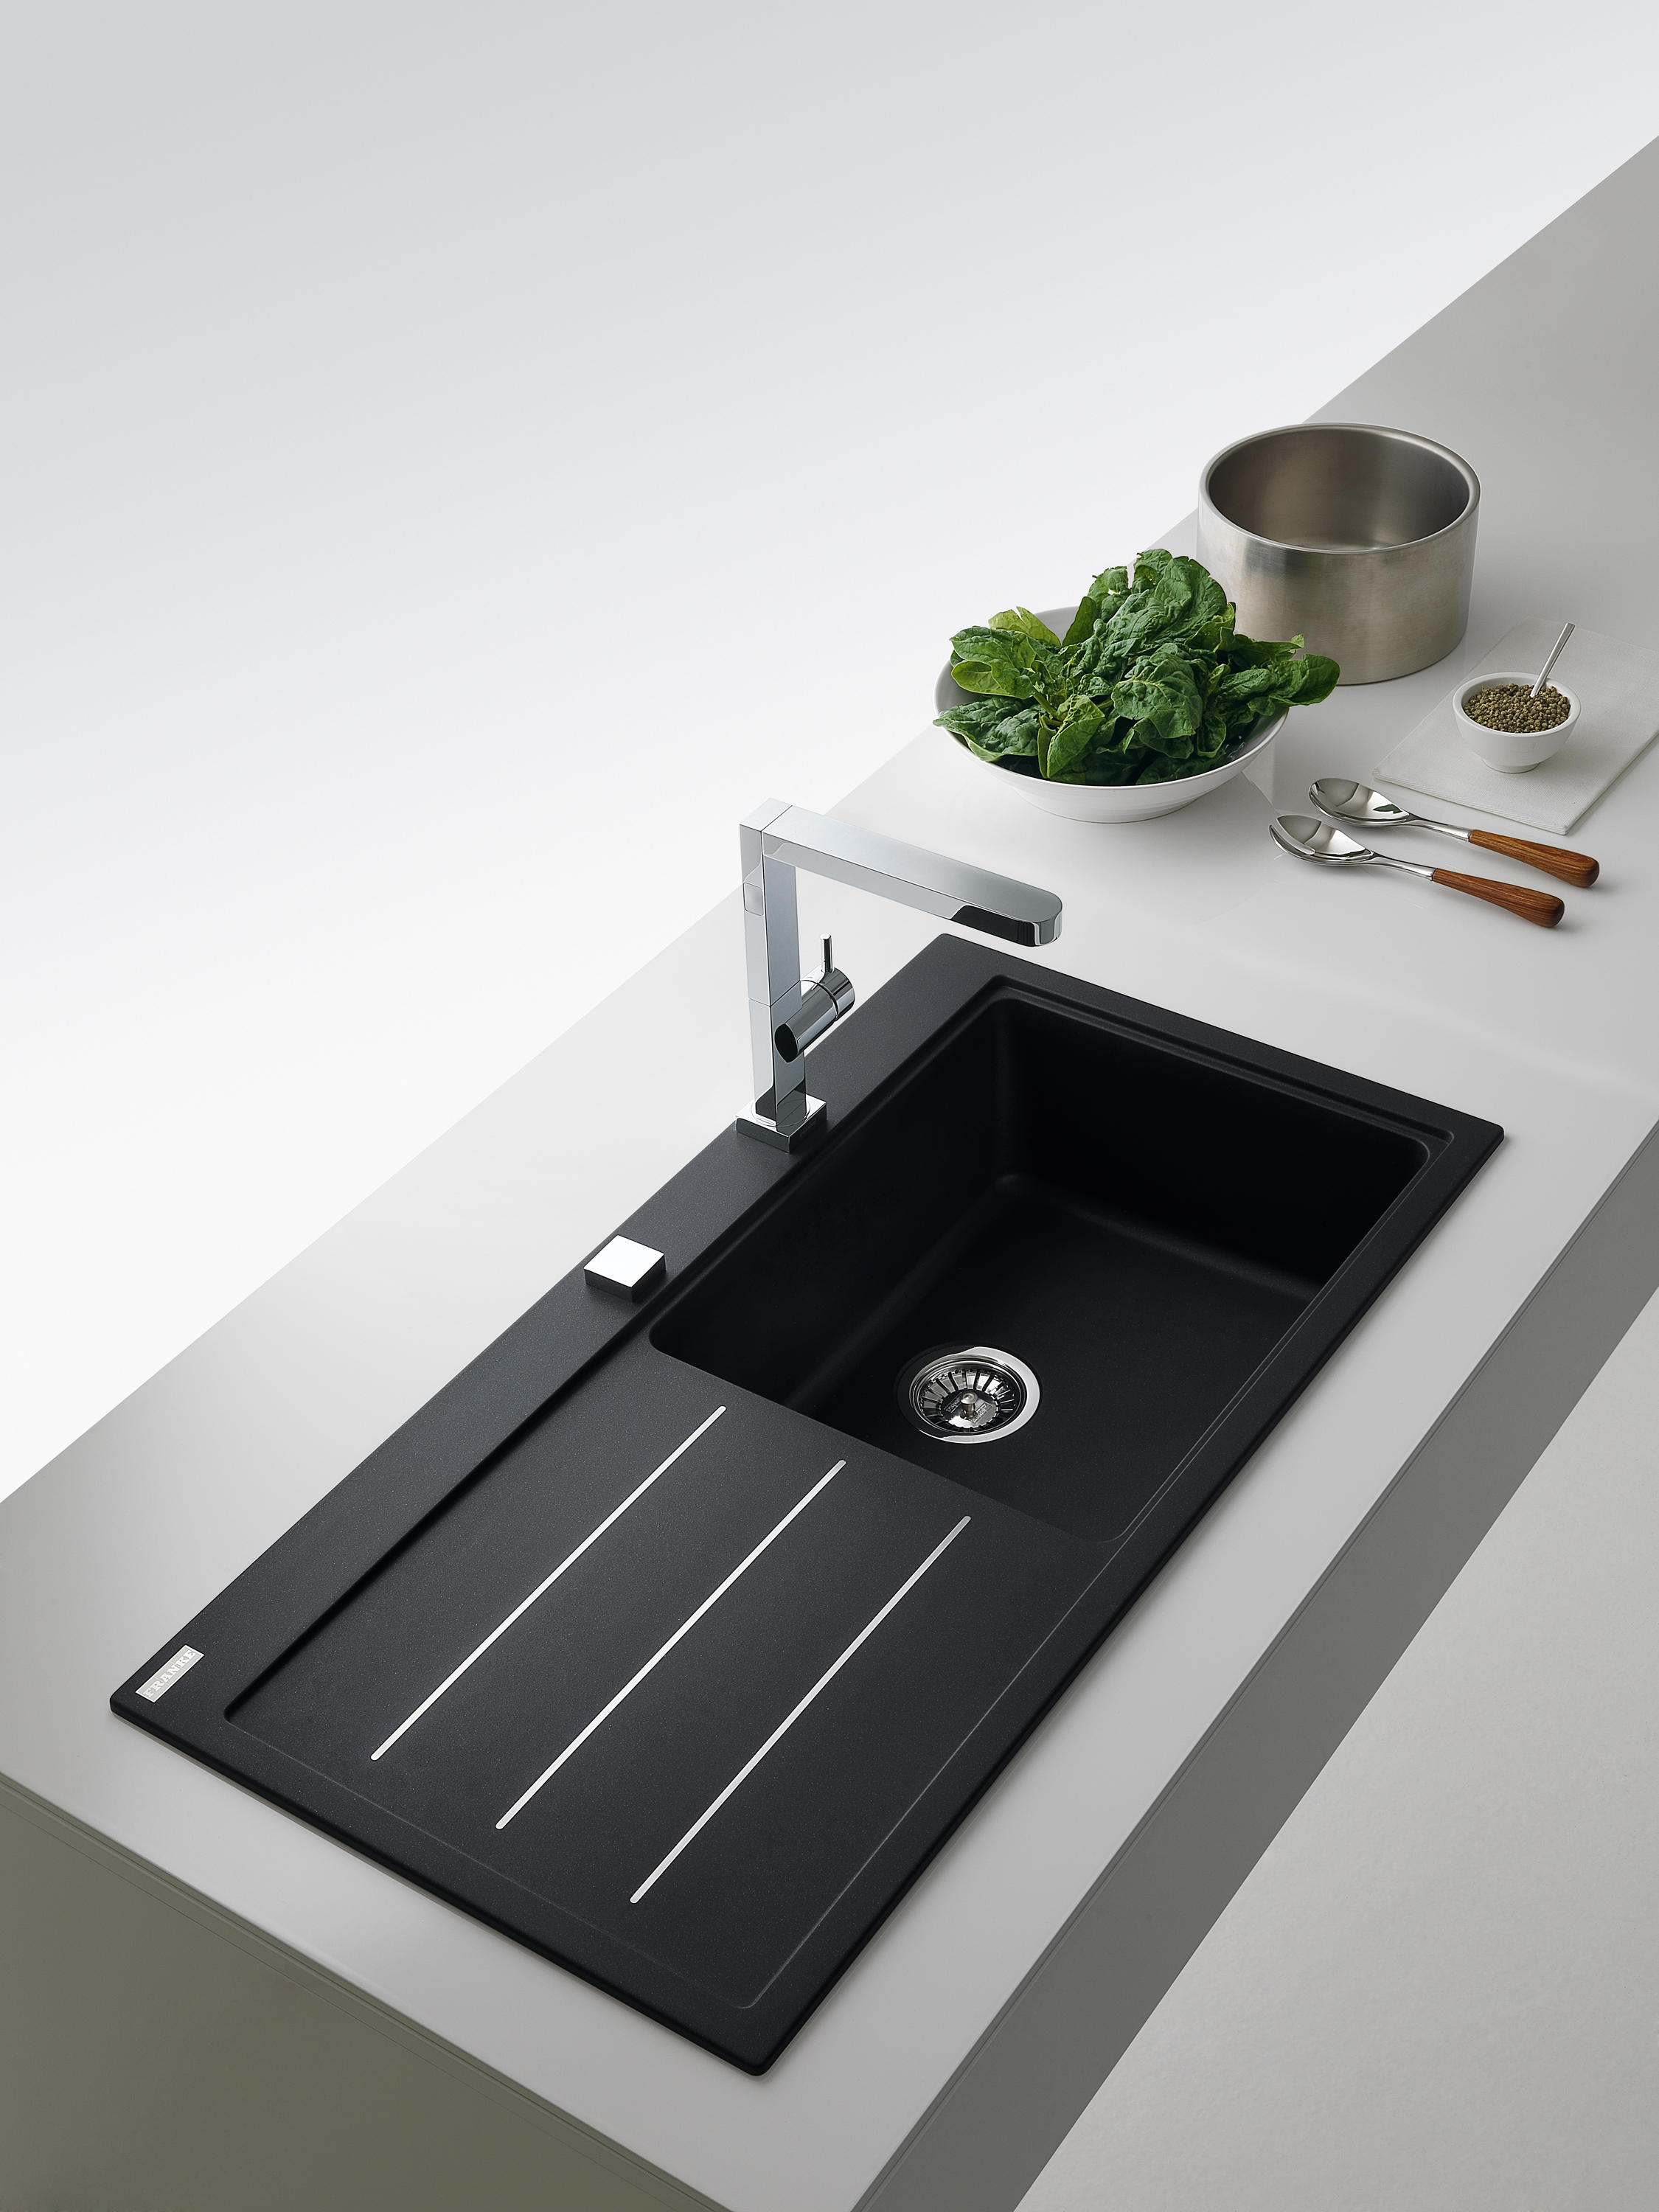 Franke Price List : ... + Graphit - Kitchen sinks by Franke Kitchen Systems Architonic